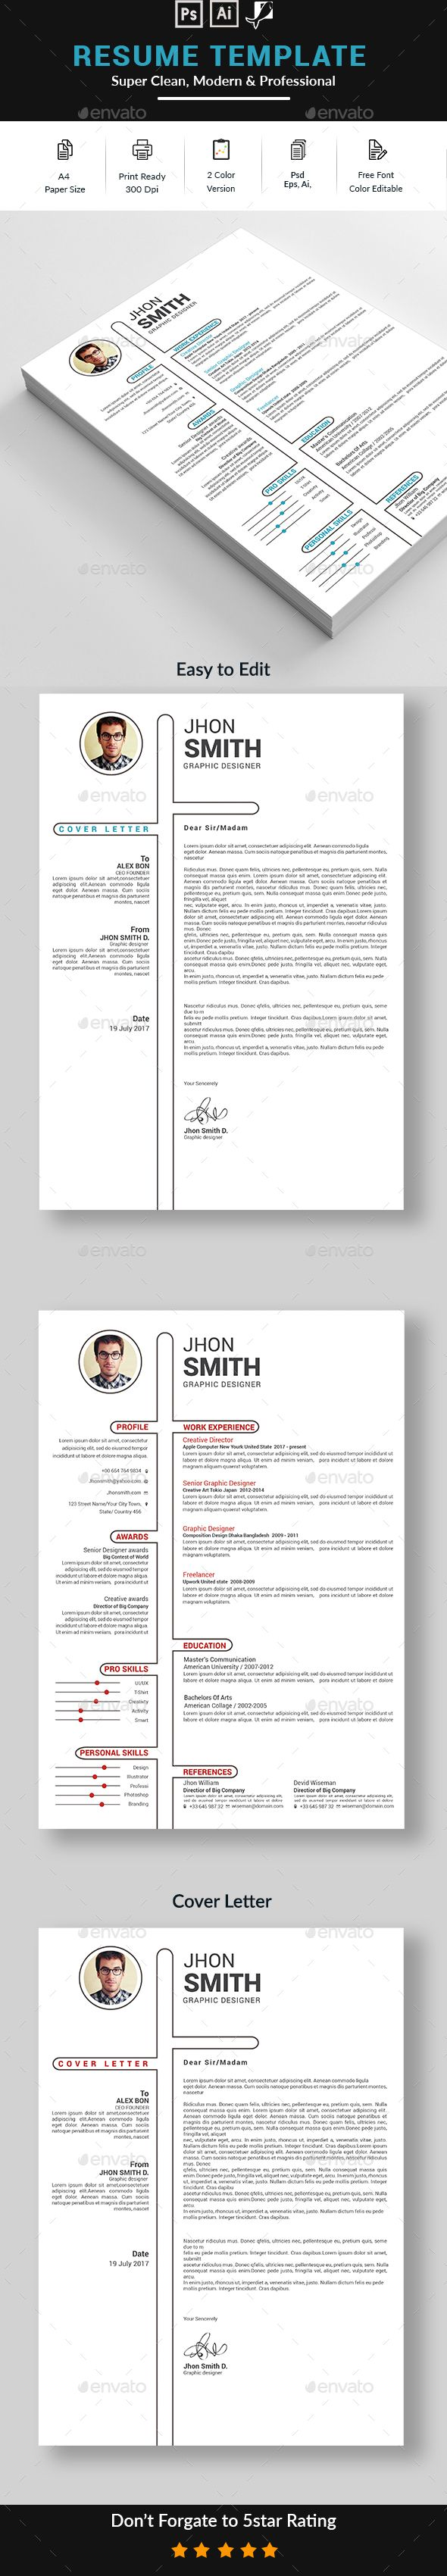 resume resume  u0026 cover letter this is a resume  u0026 cover